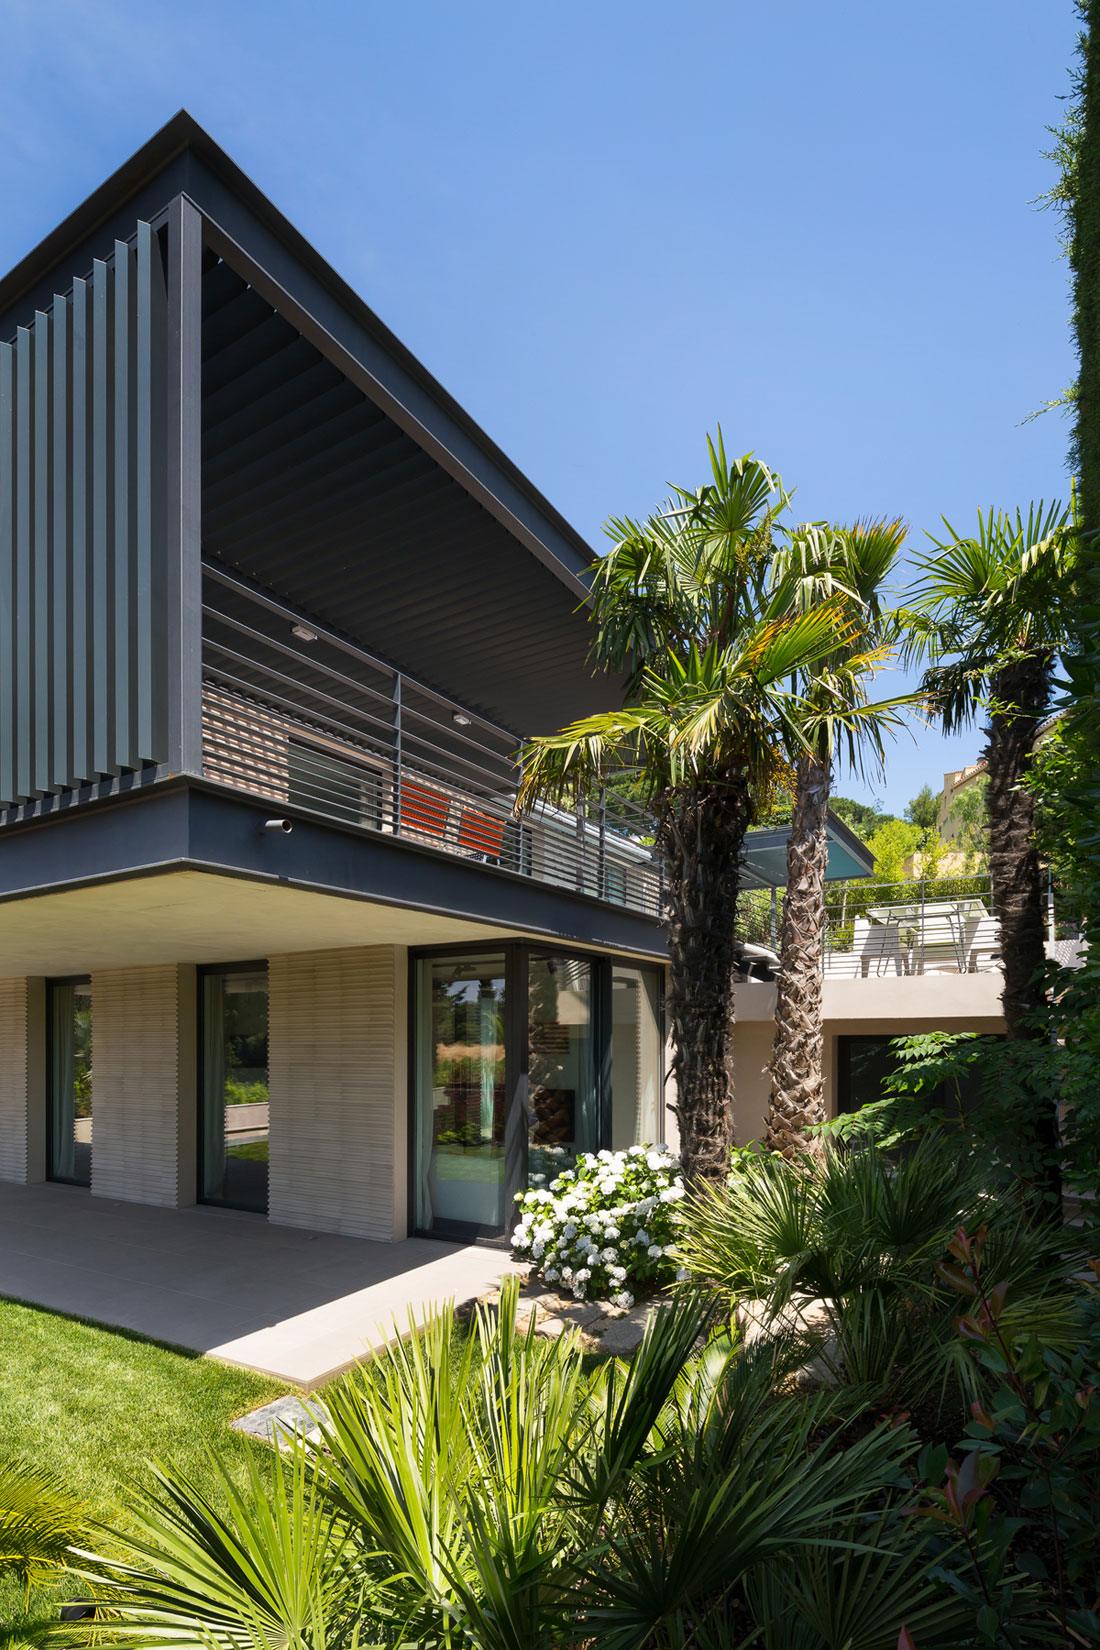 Maison H3 by Vincent Coste (4)